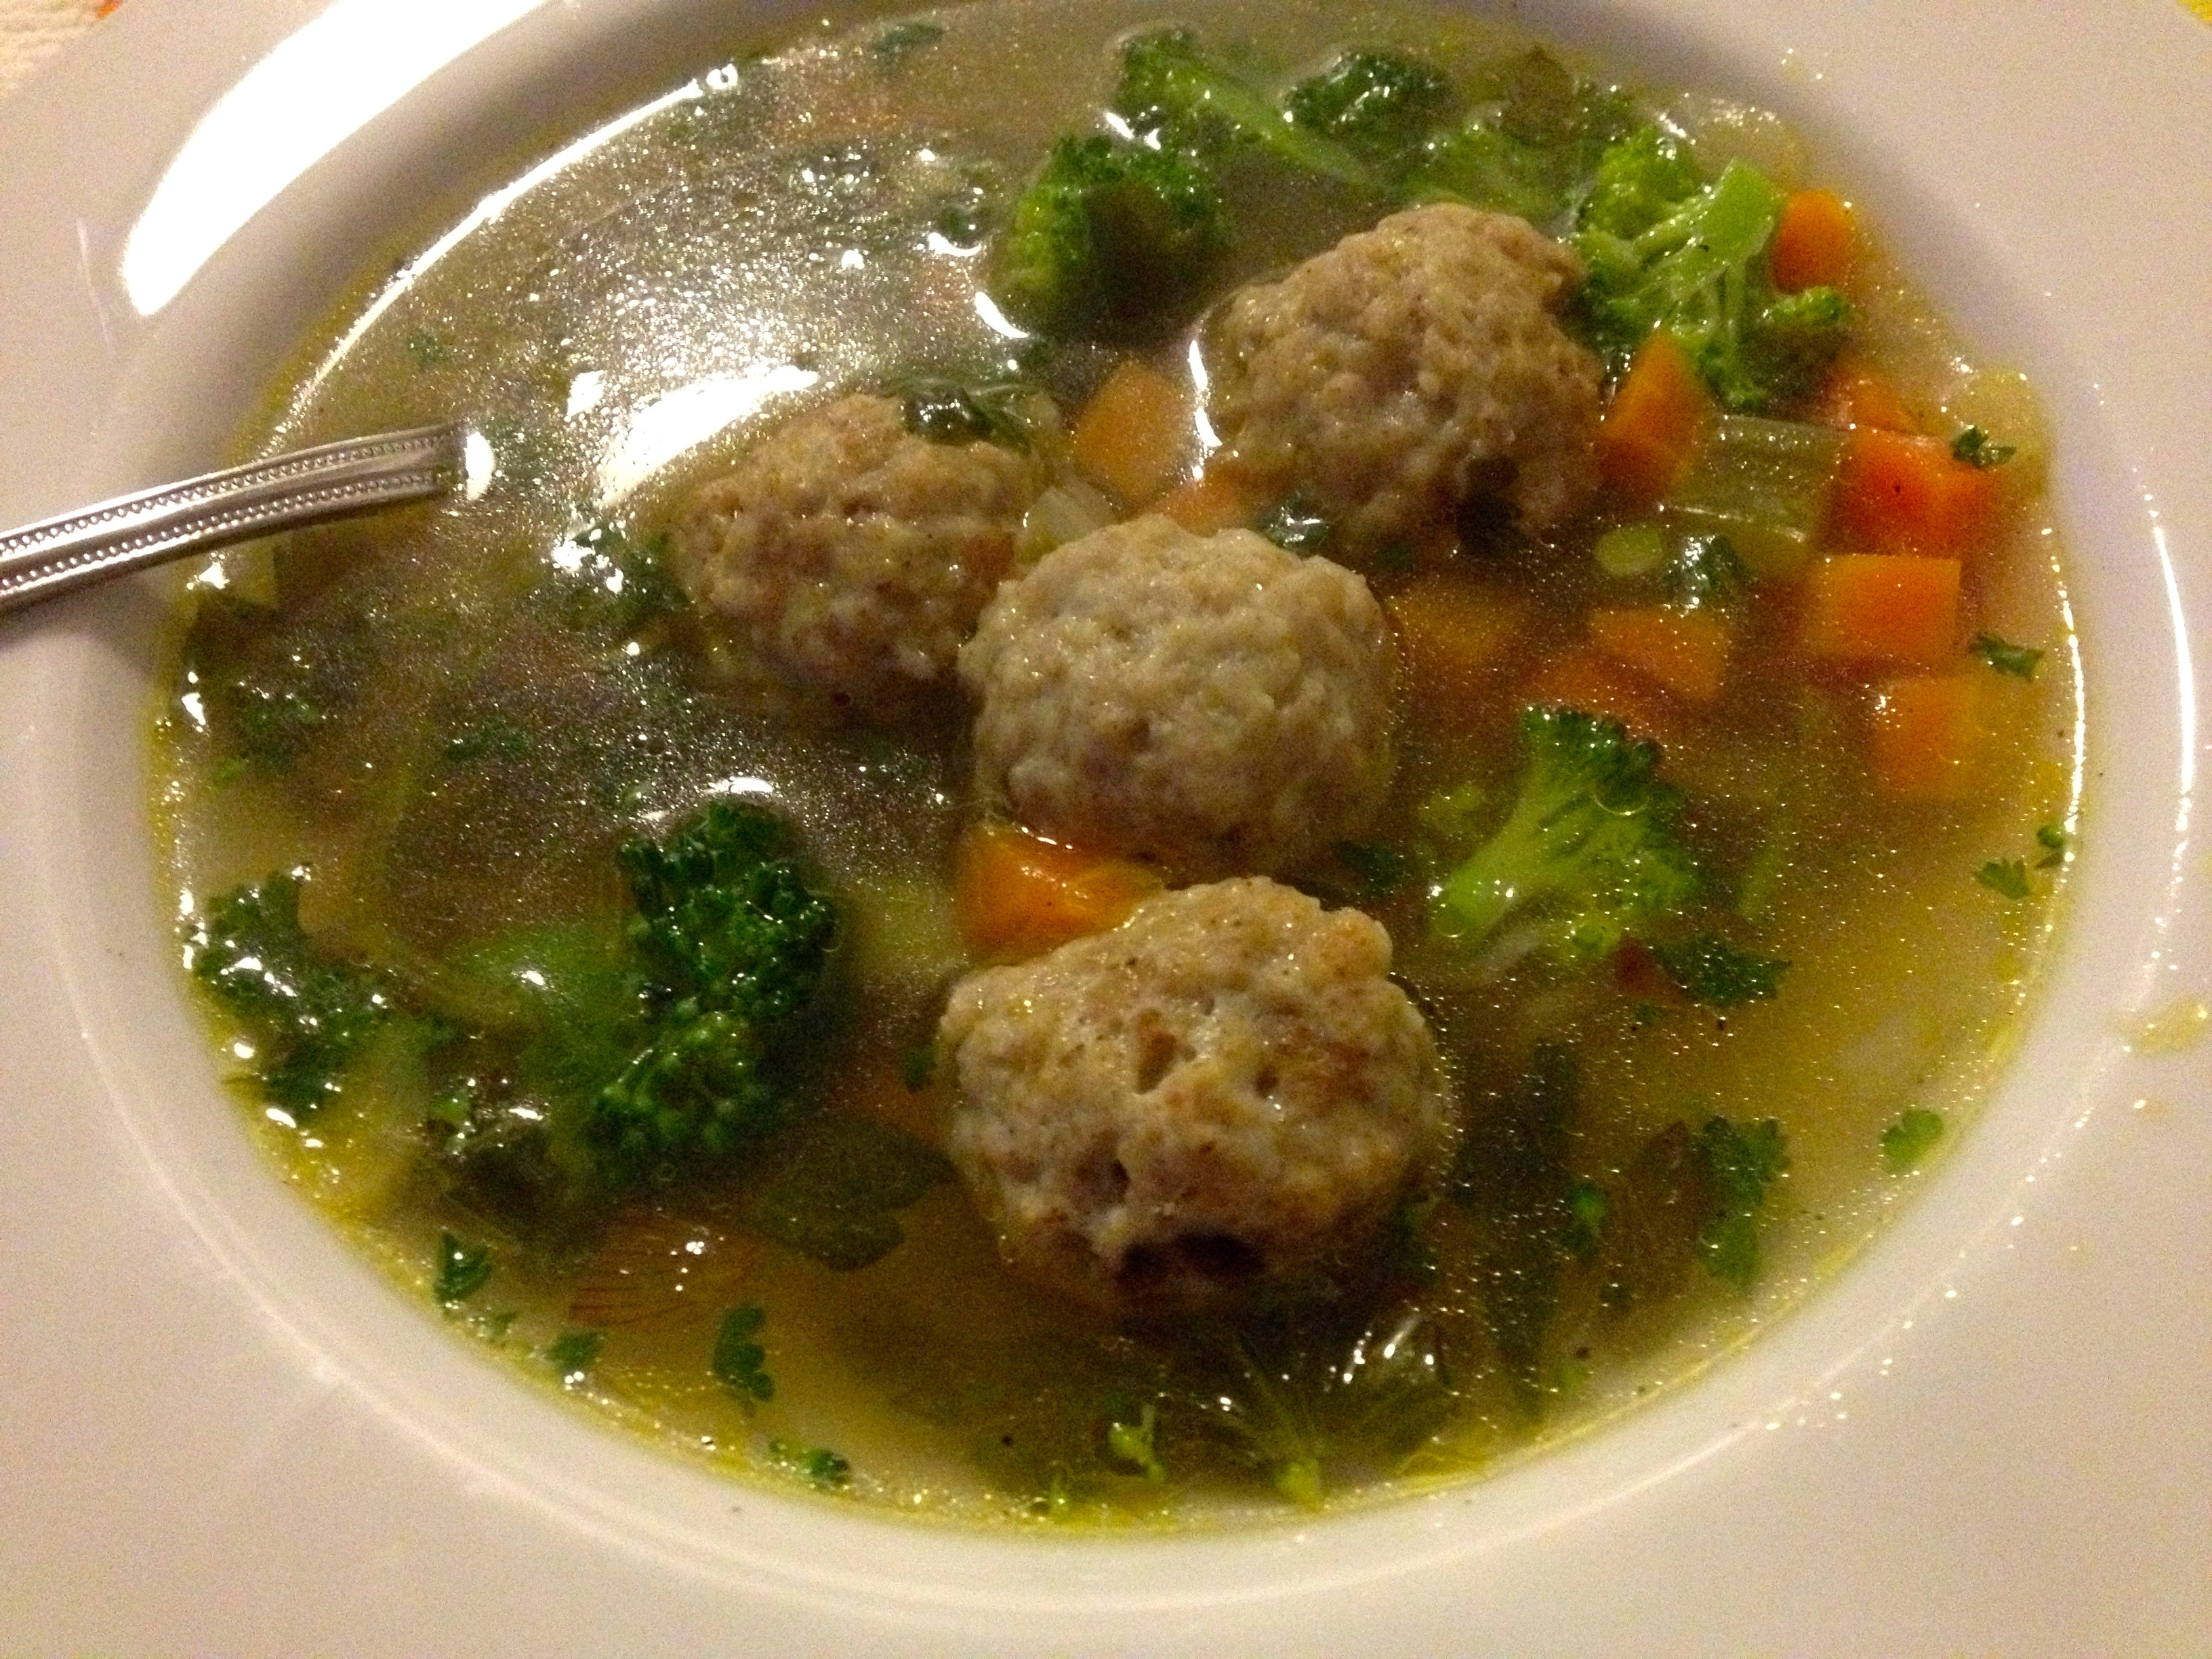 To Me Matzoh Ball Soup Is The Ultimate Comfort Food It Makes Me Think Of Home And Just Thinking About It Makes Me Feel Better When I M Sick